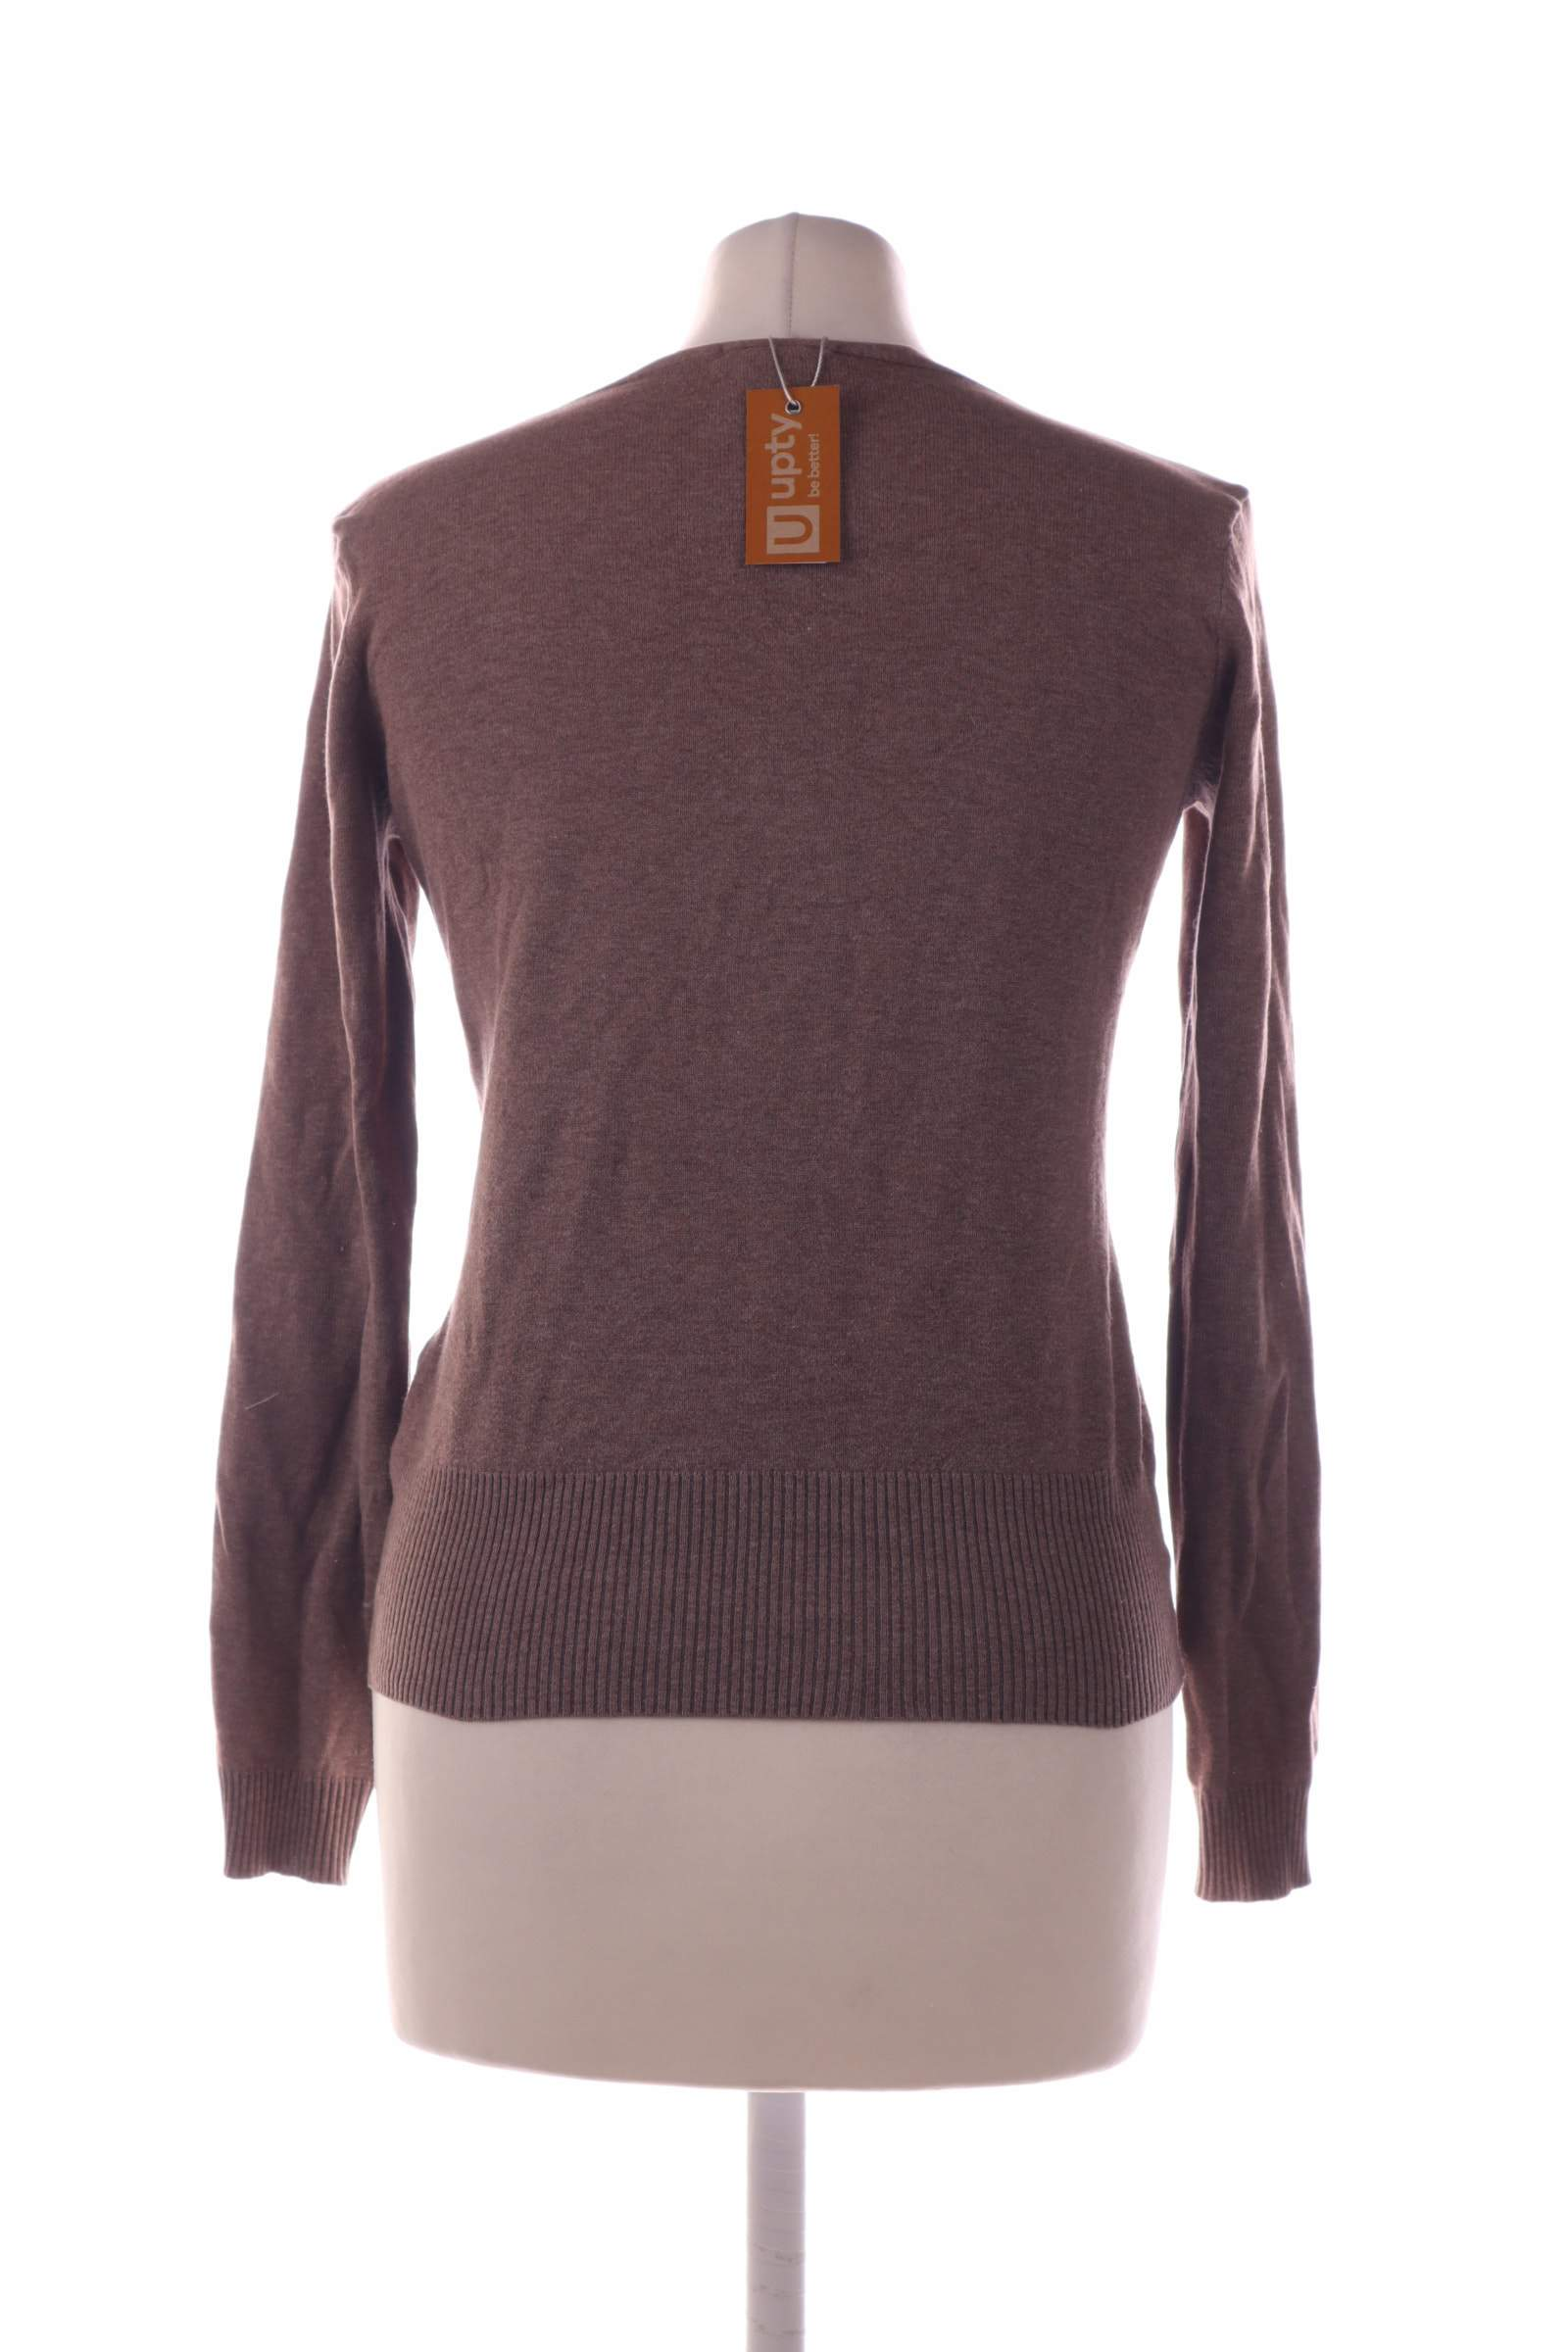 H&M Brown Sweater - upty.store